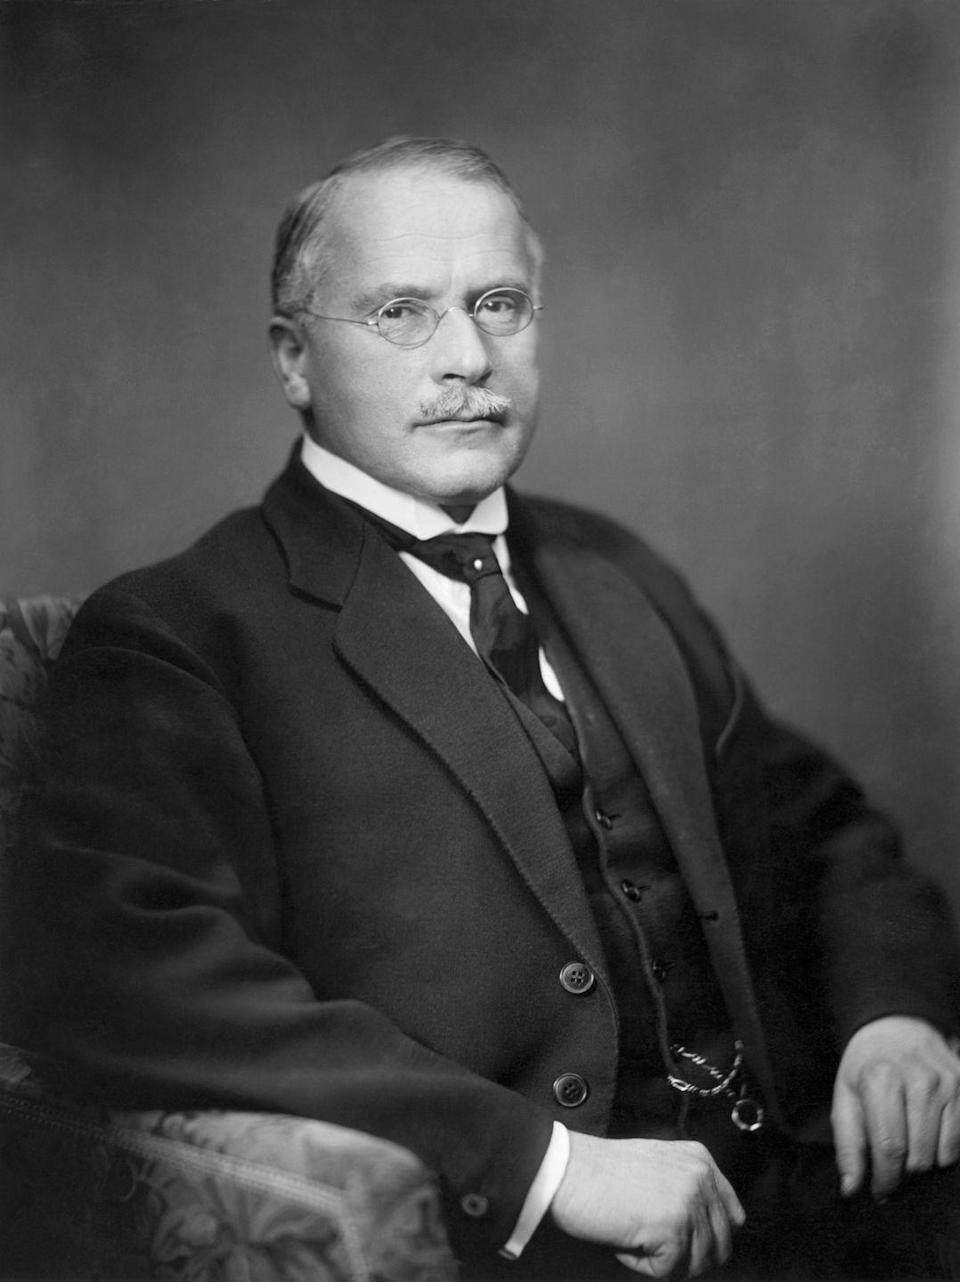 "<p>In 1944, psychiatrist Carl G. Jung suffered a heart attack and explained the <a href=""https://www.near-death.com/experiences/exceptional/carl-jung.html"" rel=""nofollow noopener"" target=""_blank"" data-ylk=""slk:near-death experience"" class=""link rapid-noclick-resp"">near-death experience</a> he had in the hospital afterward in his book, <a href=""https://www.amazon.com/dp/B004FYZK52/?tag=syn-yahoo-20&ascsubtag=%5Bartid%7C2141.g.36311064%5Bsrc%7Cyahoo-us"" rel=""nofollow noopener"" target=""_blank"" data-ylk=""slk:Memories, Dreams, Reflections"" class=""link rapid-noclick-resp""><em>Memories, Dreams, Reflections</em></a>: ""I had the feeling that everything was being sloughed away; everything I aimed at or wished for or thought, the whole phantasmagoria of earthly existence, fell away or was stripped from me—an extremely painful process. This experience gave me a feeling of extreme poverty, but at the same time of great fullness. There was no longer anything I wanted or desired."" </p>"